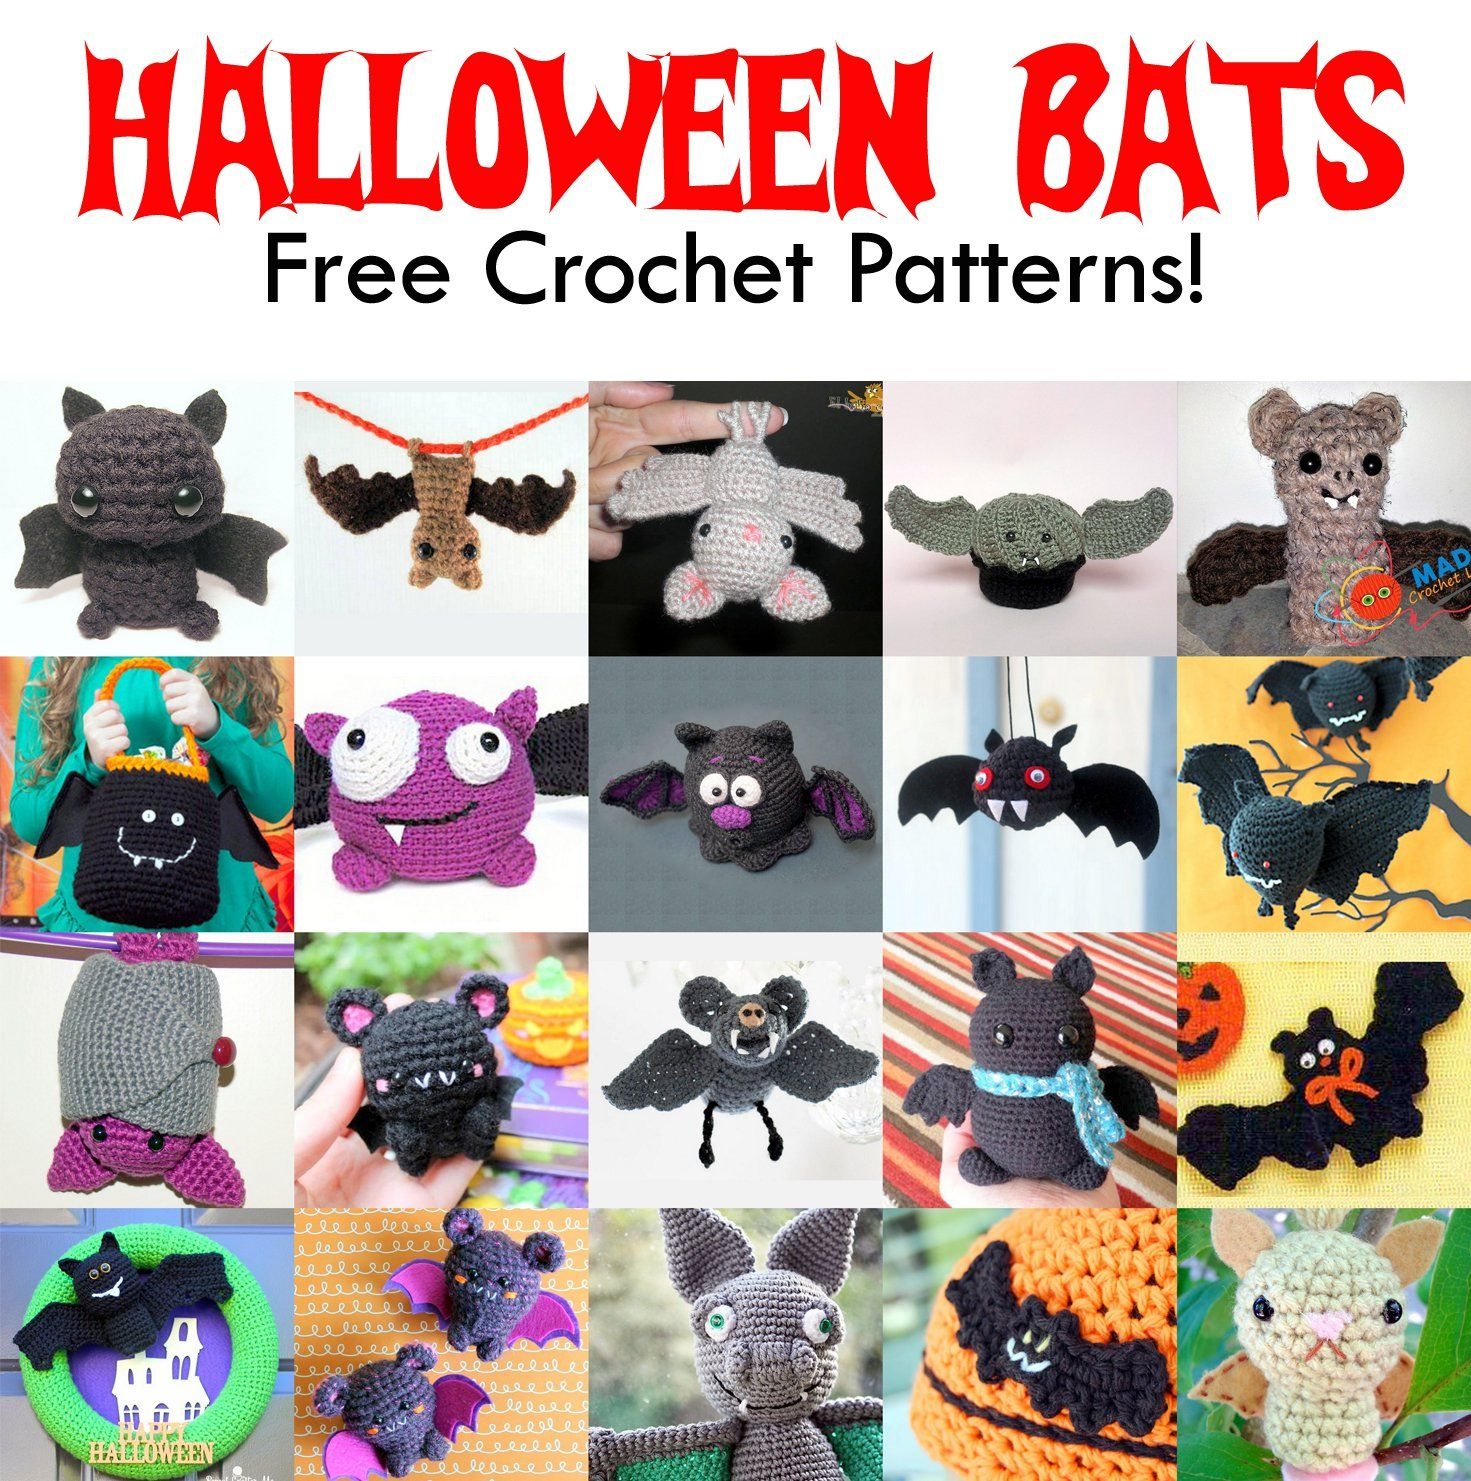 Free Halloween Bat Crochet Patterns http://hubpages.com/art/Free-Halloween-Bat-Crochet-Patterns